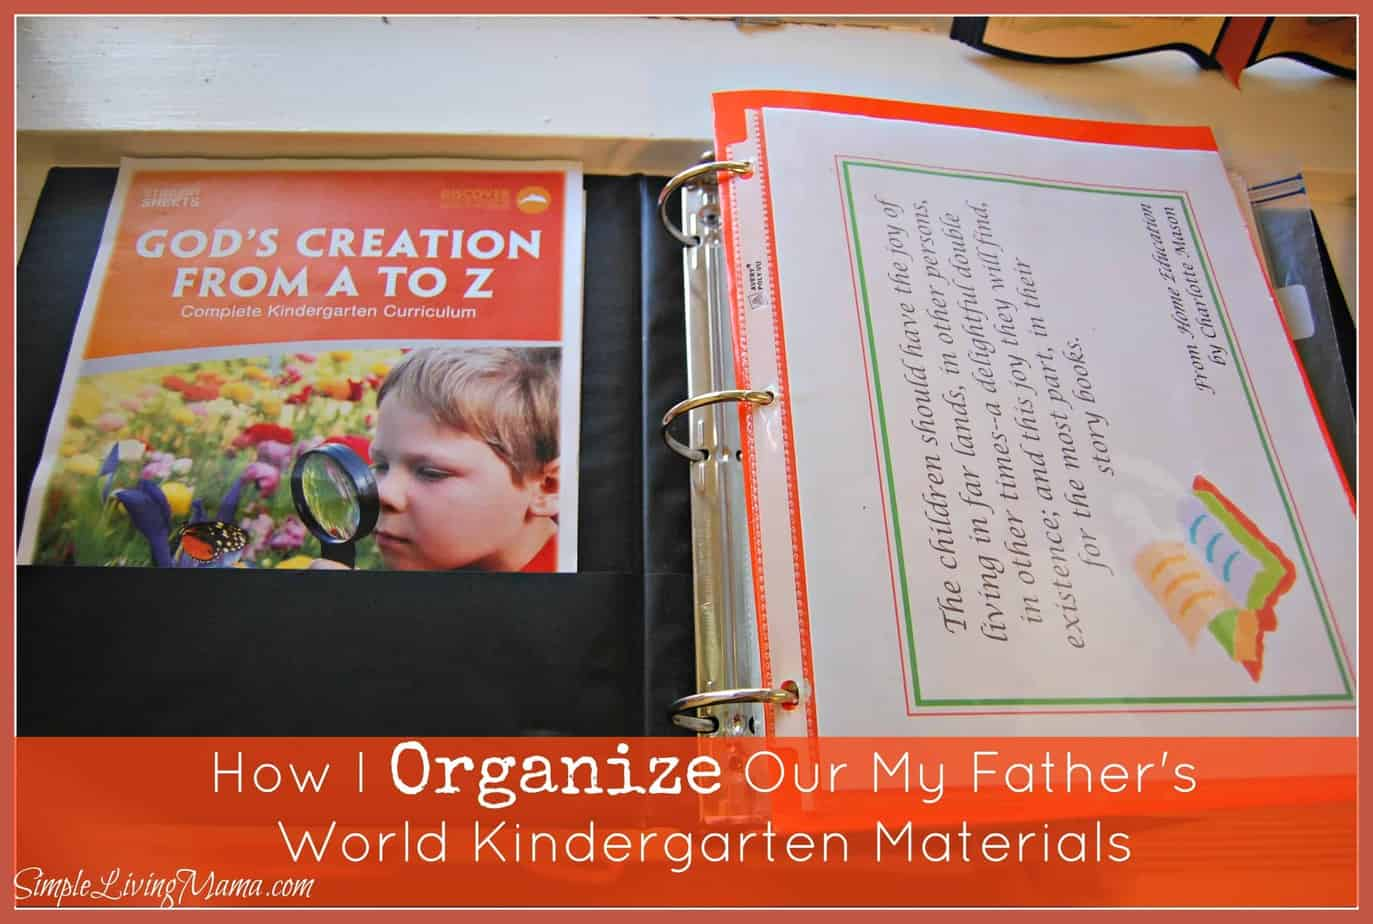 How To Organize My Father's World Kindergarten Curriculum